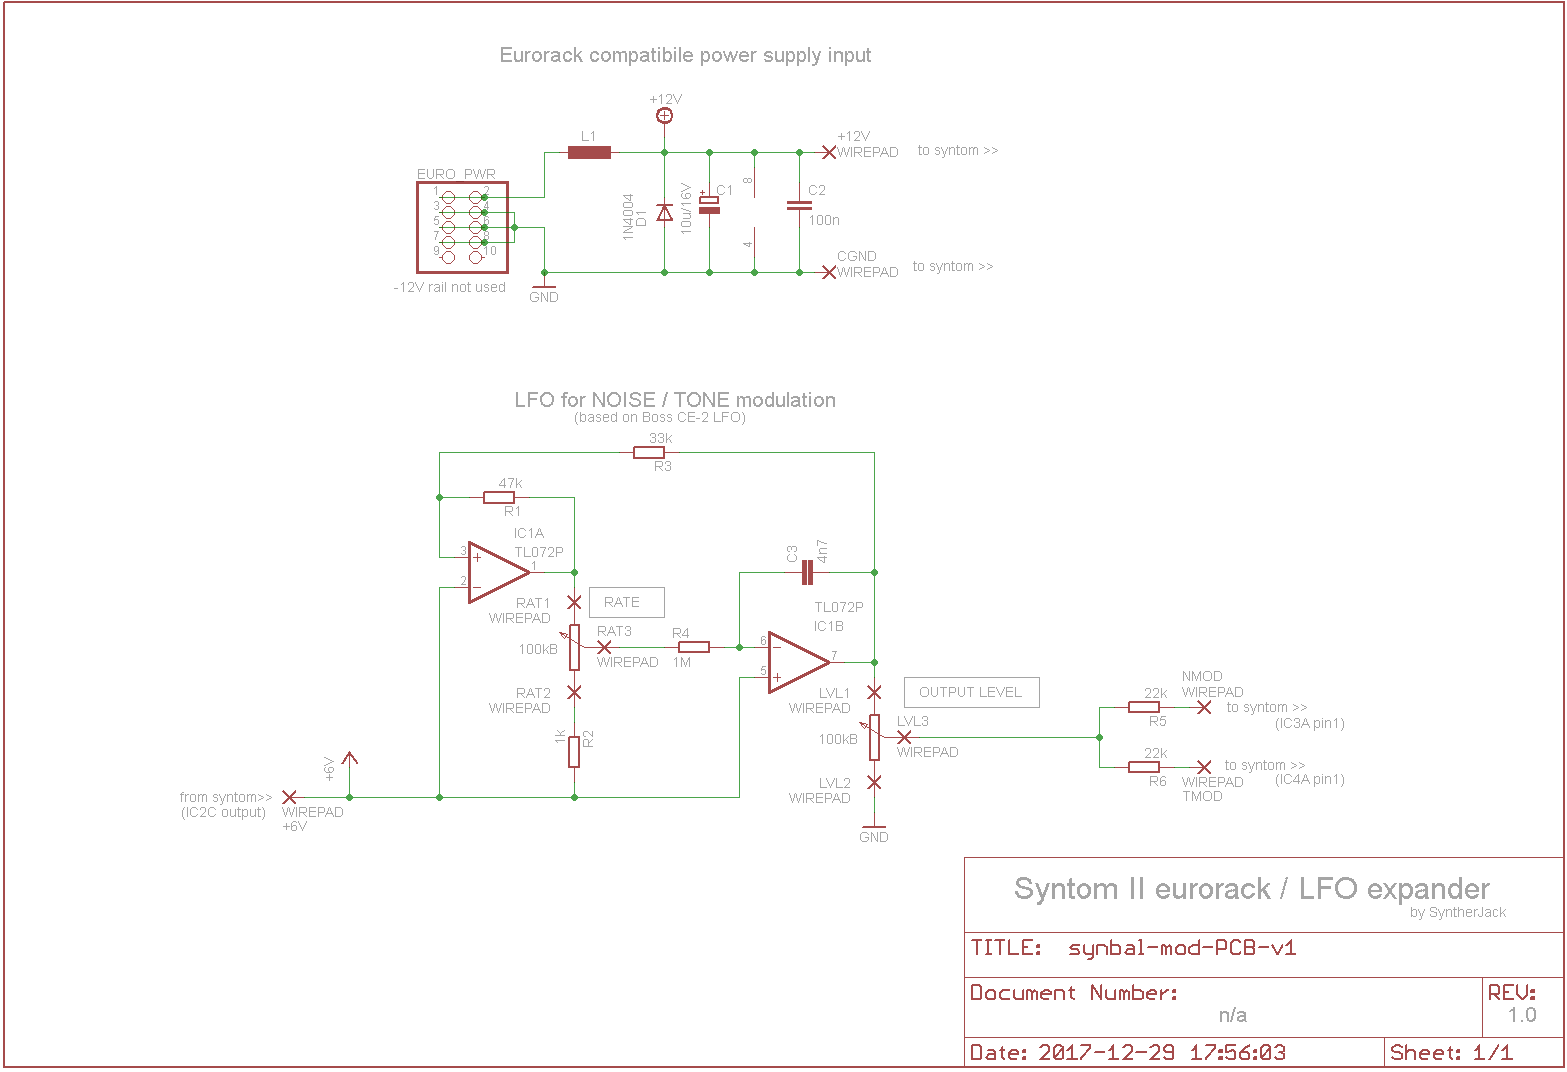 Synthom II LFO expander schematic